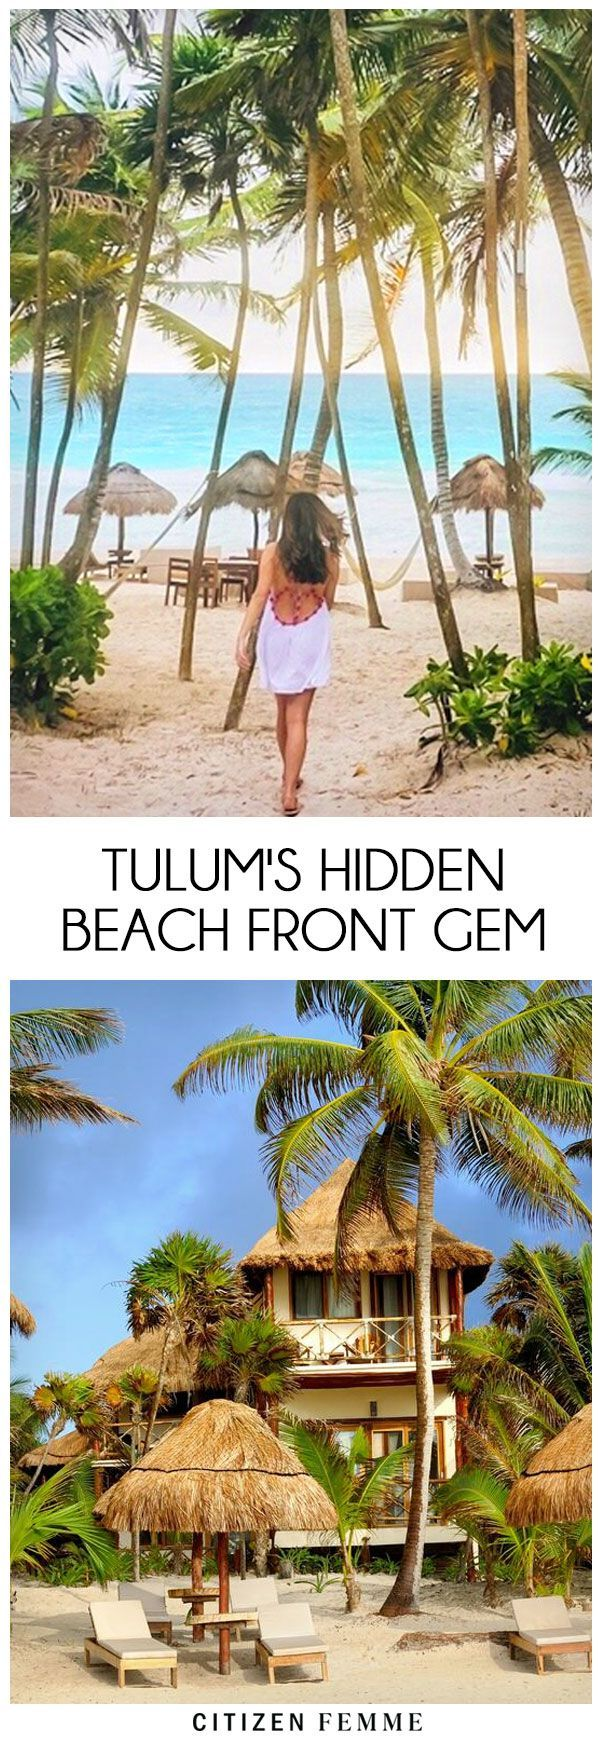 #mexico #beach  I spent my last day of 2016 in Tulum, Mexico celebrating the New Year and let me tell you it may have been the best New Year ever! Cheers to 2017!! Tulum has quickly become the hottest destination in the last two years and now I can see wh